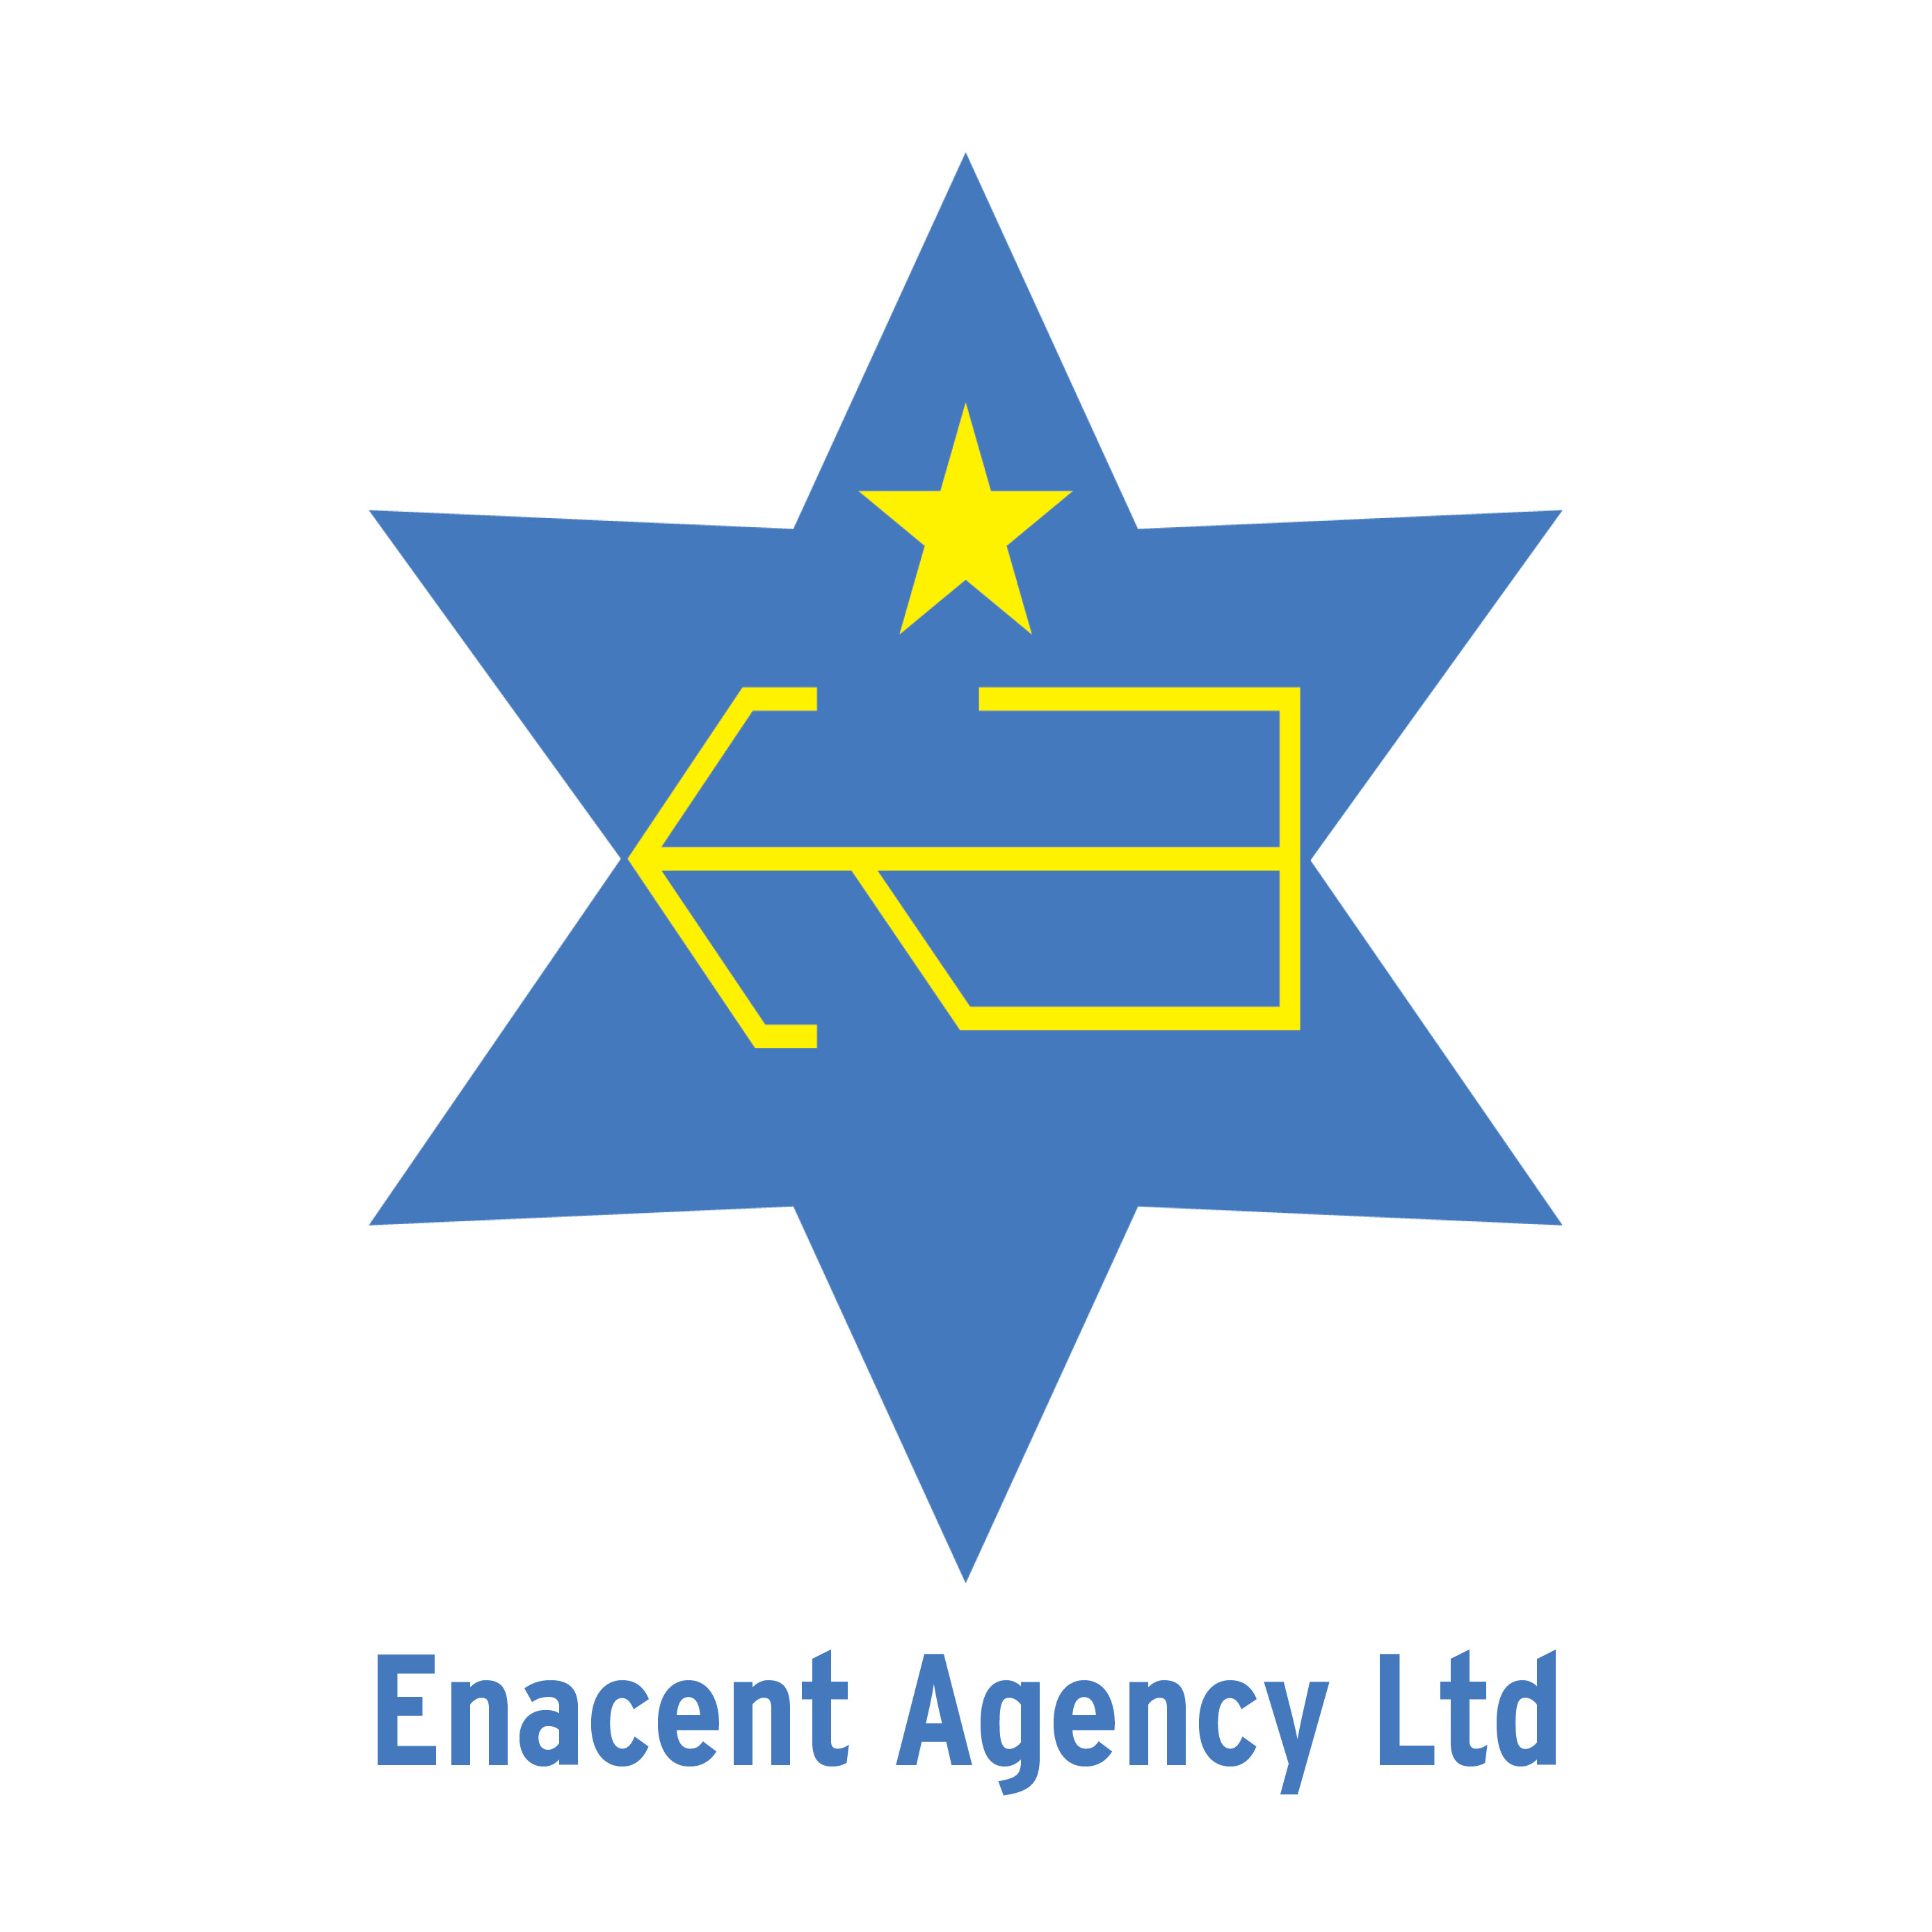 Enacent Agency Ltd